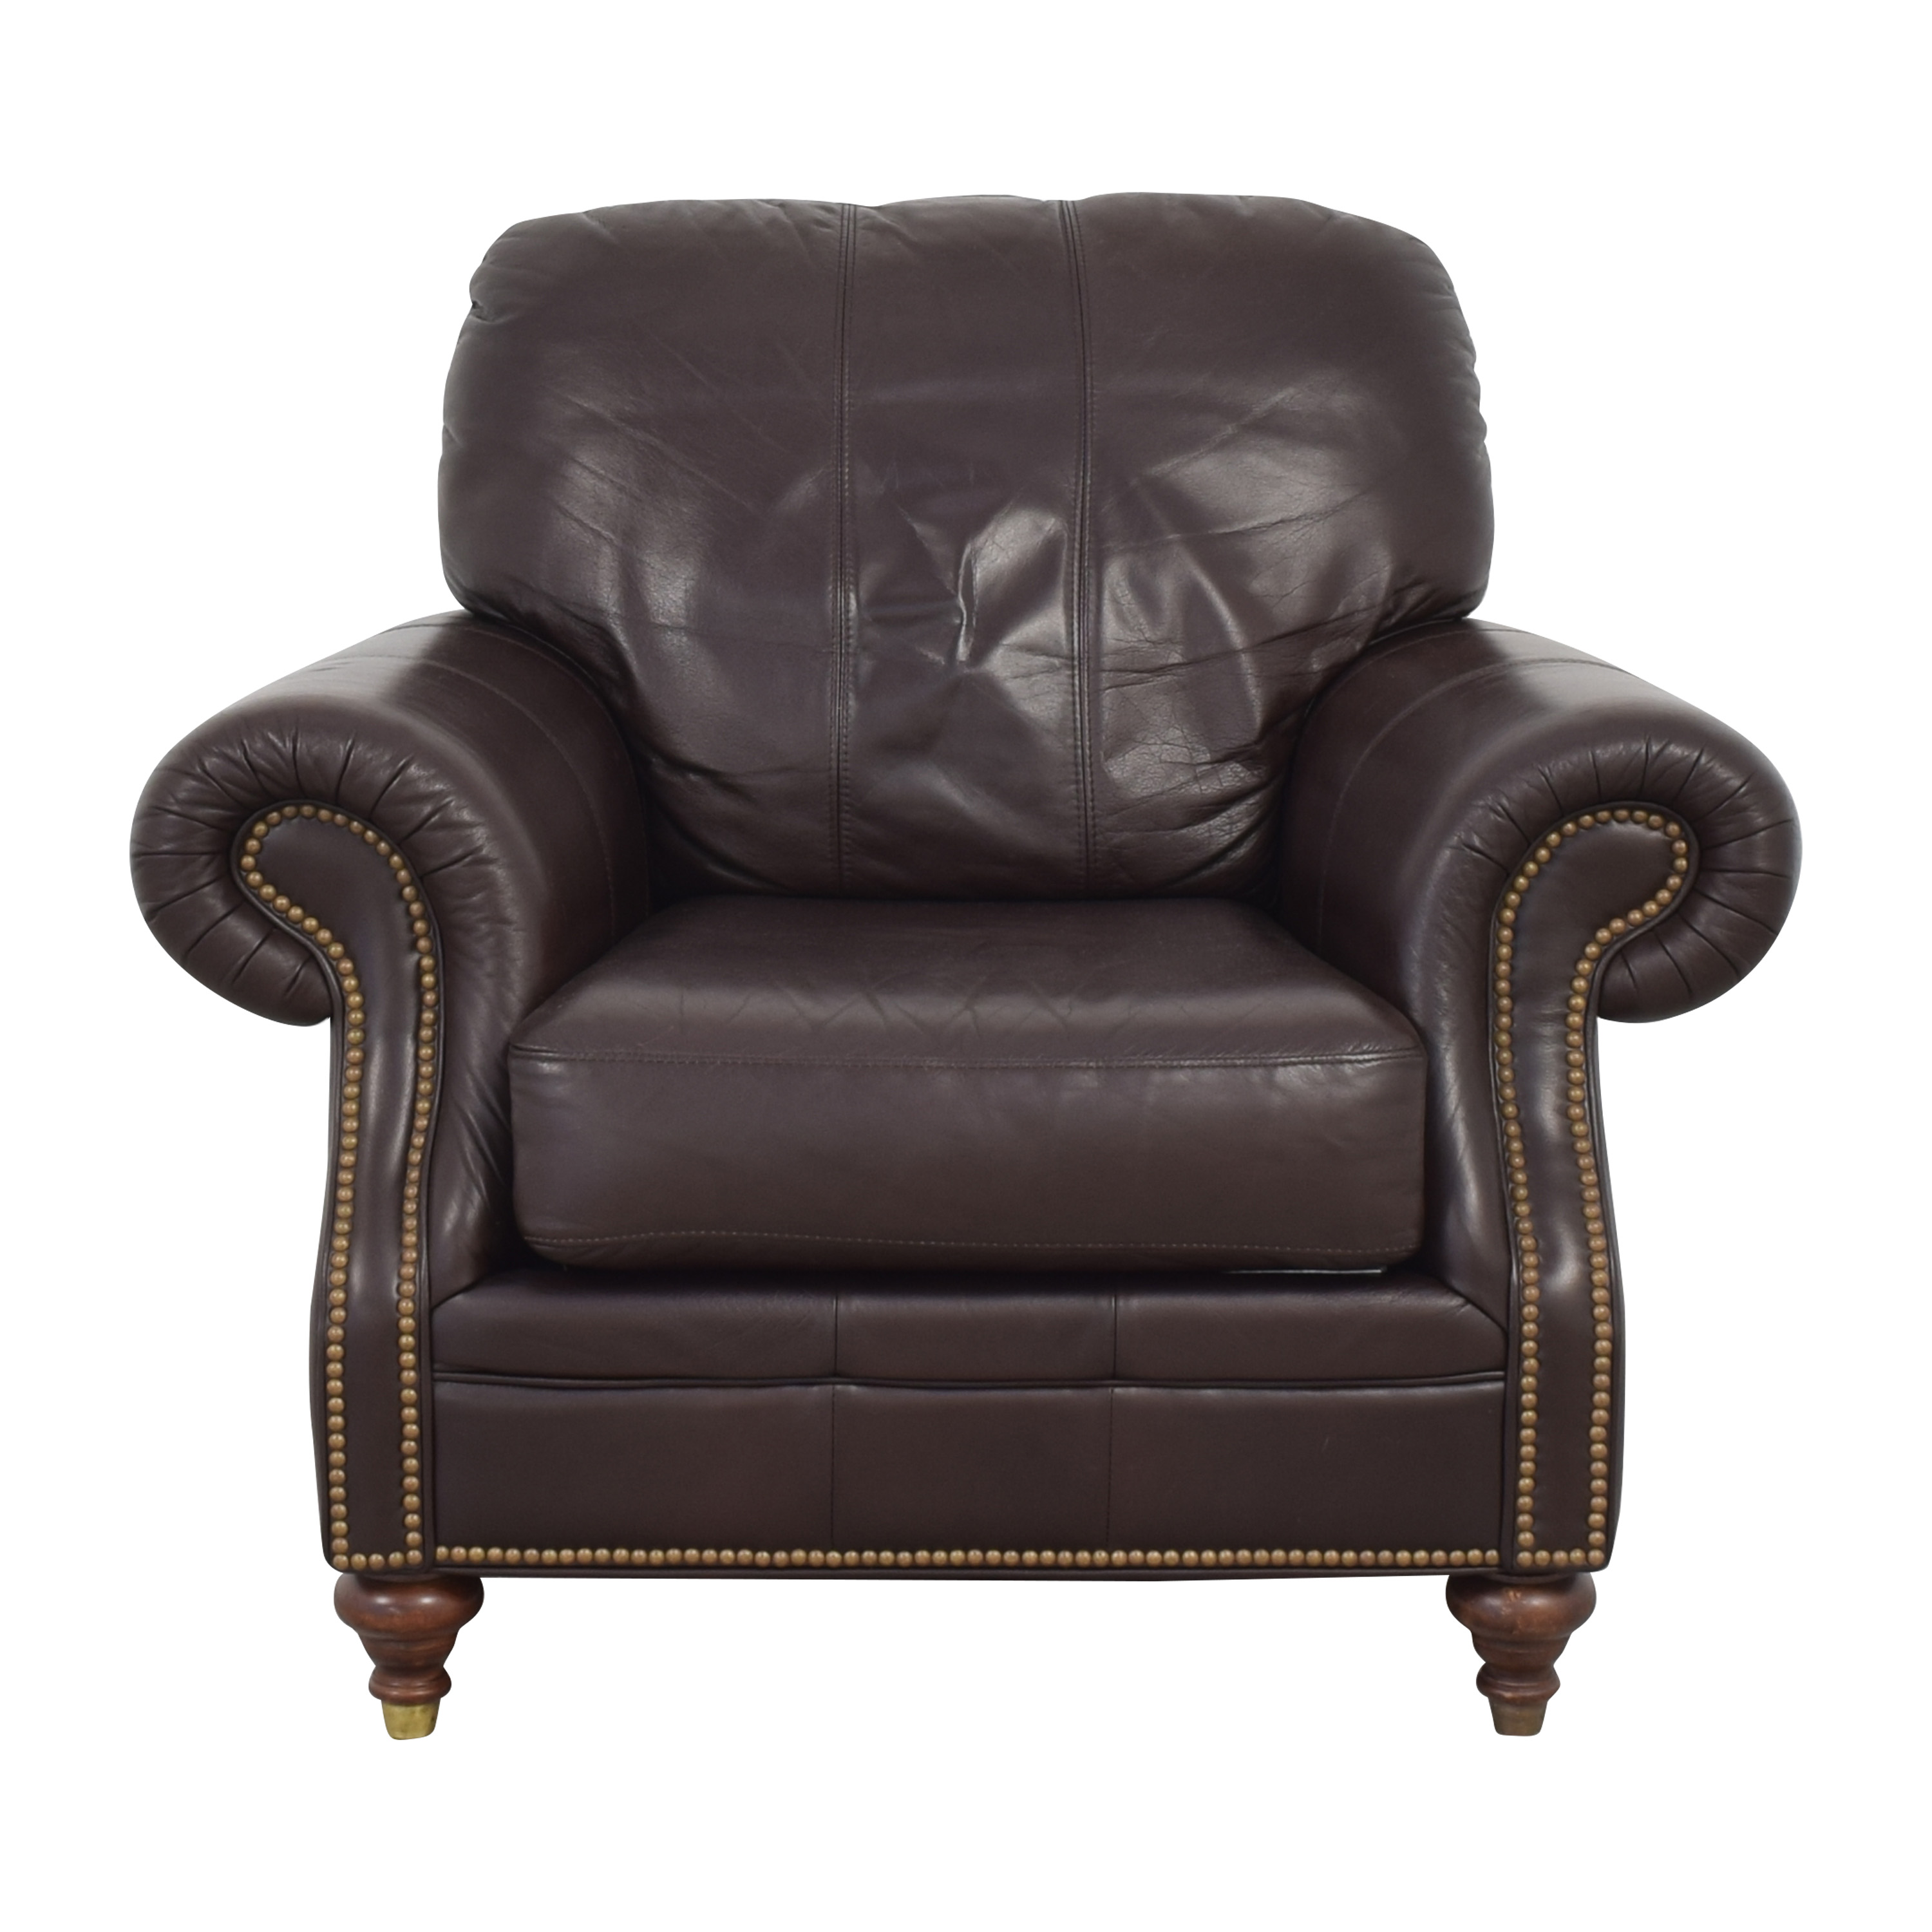 Ethan Allen Ethan Allen Bennett Roll-Arm Leather Chair with ottoman coupon